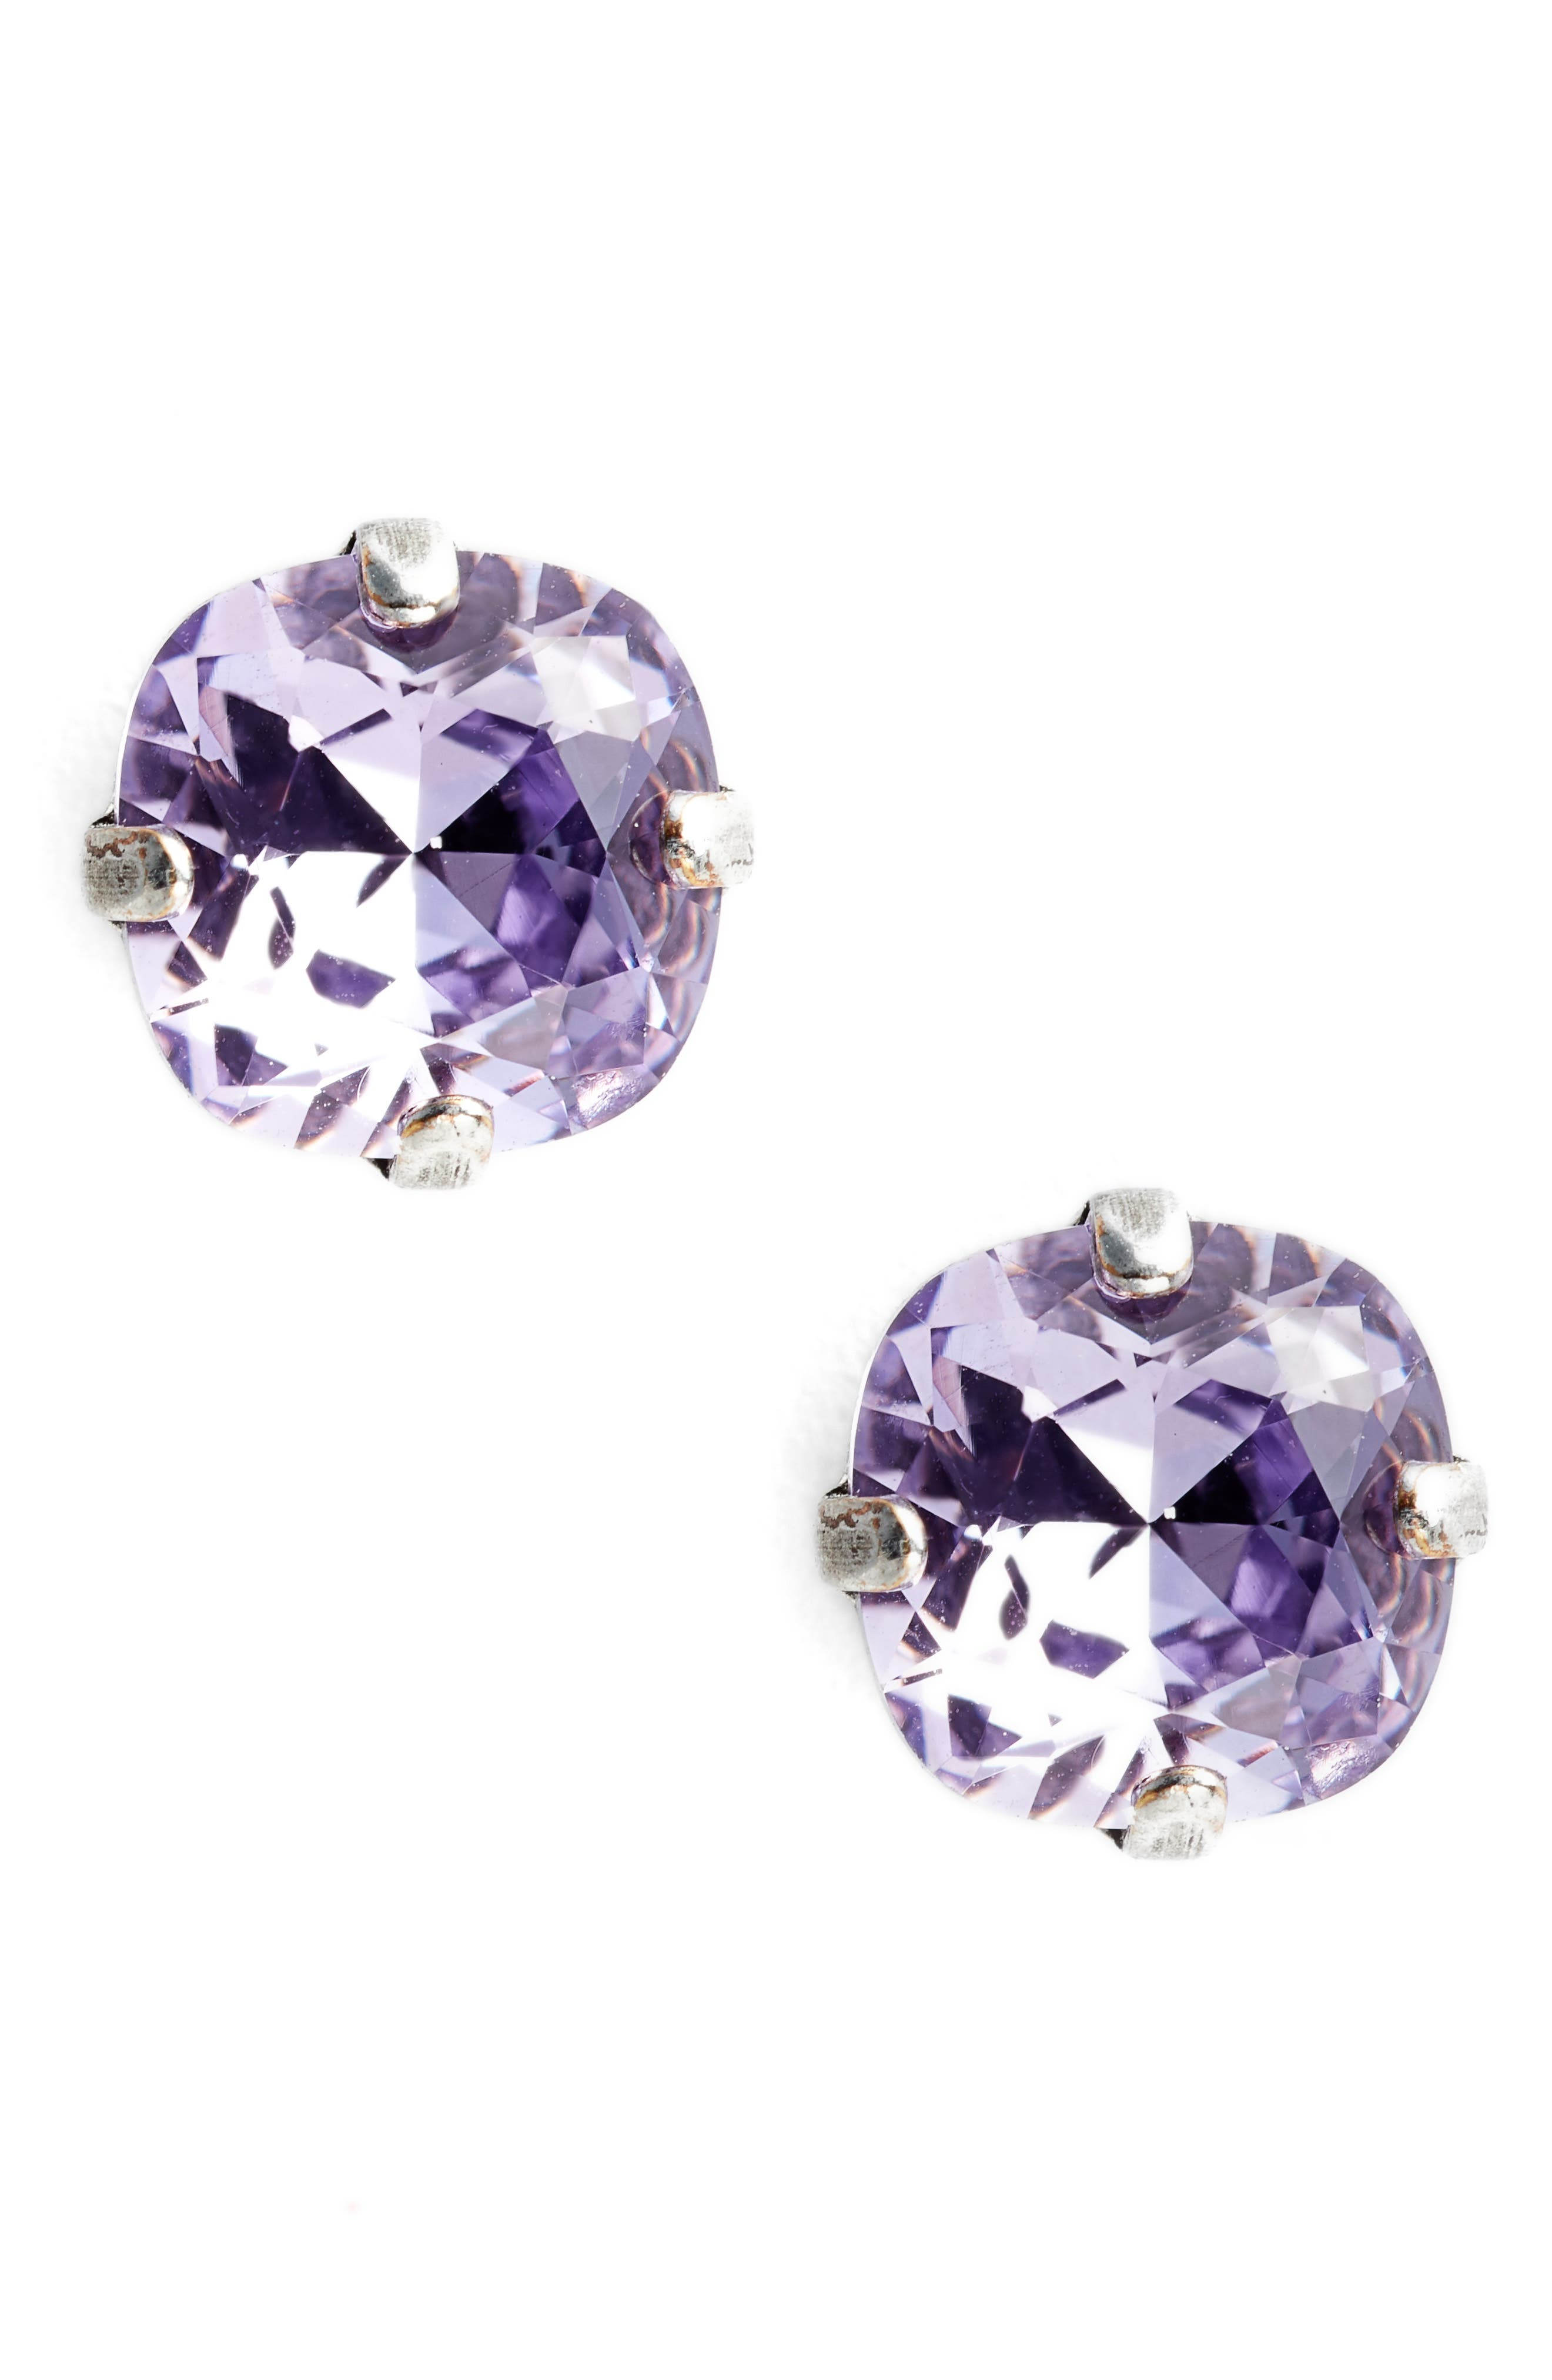 One & Only Crystal Earrings,                             Main thumbnail 1, color,                             Purple